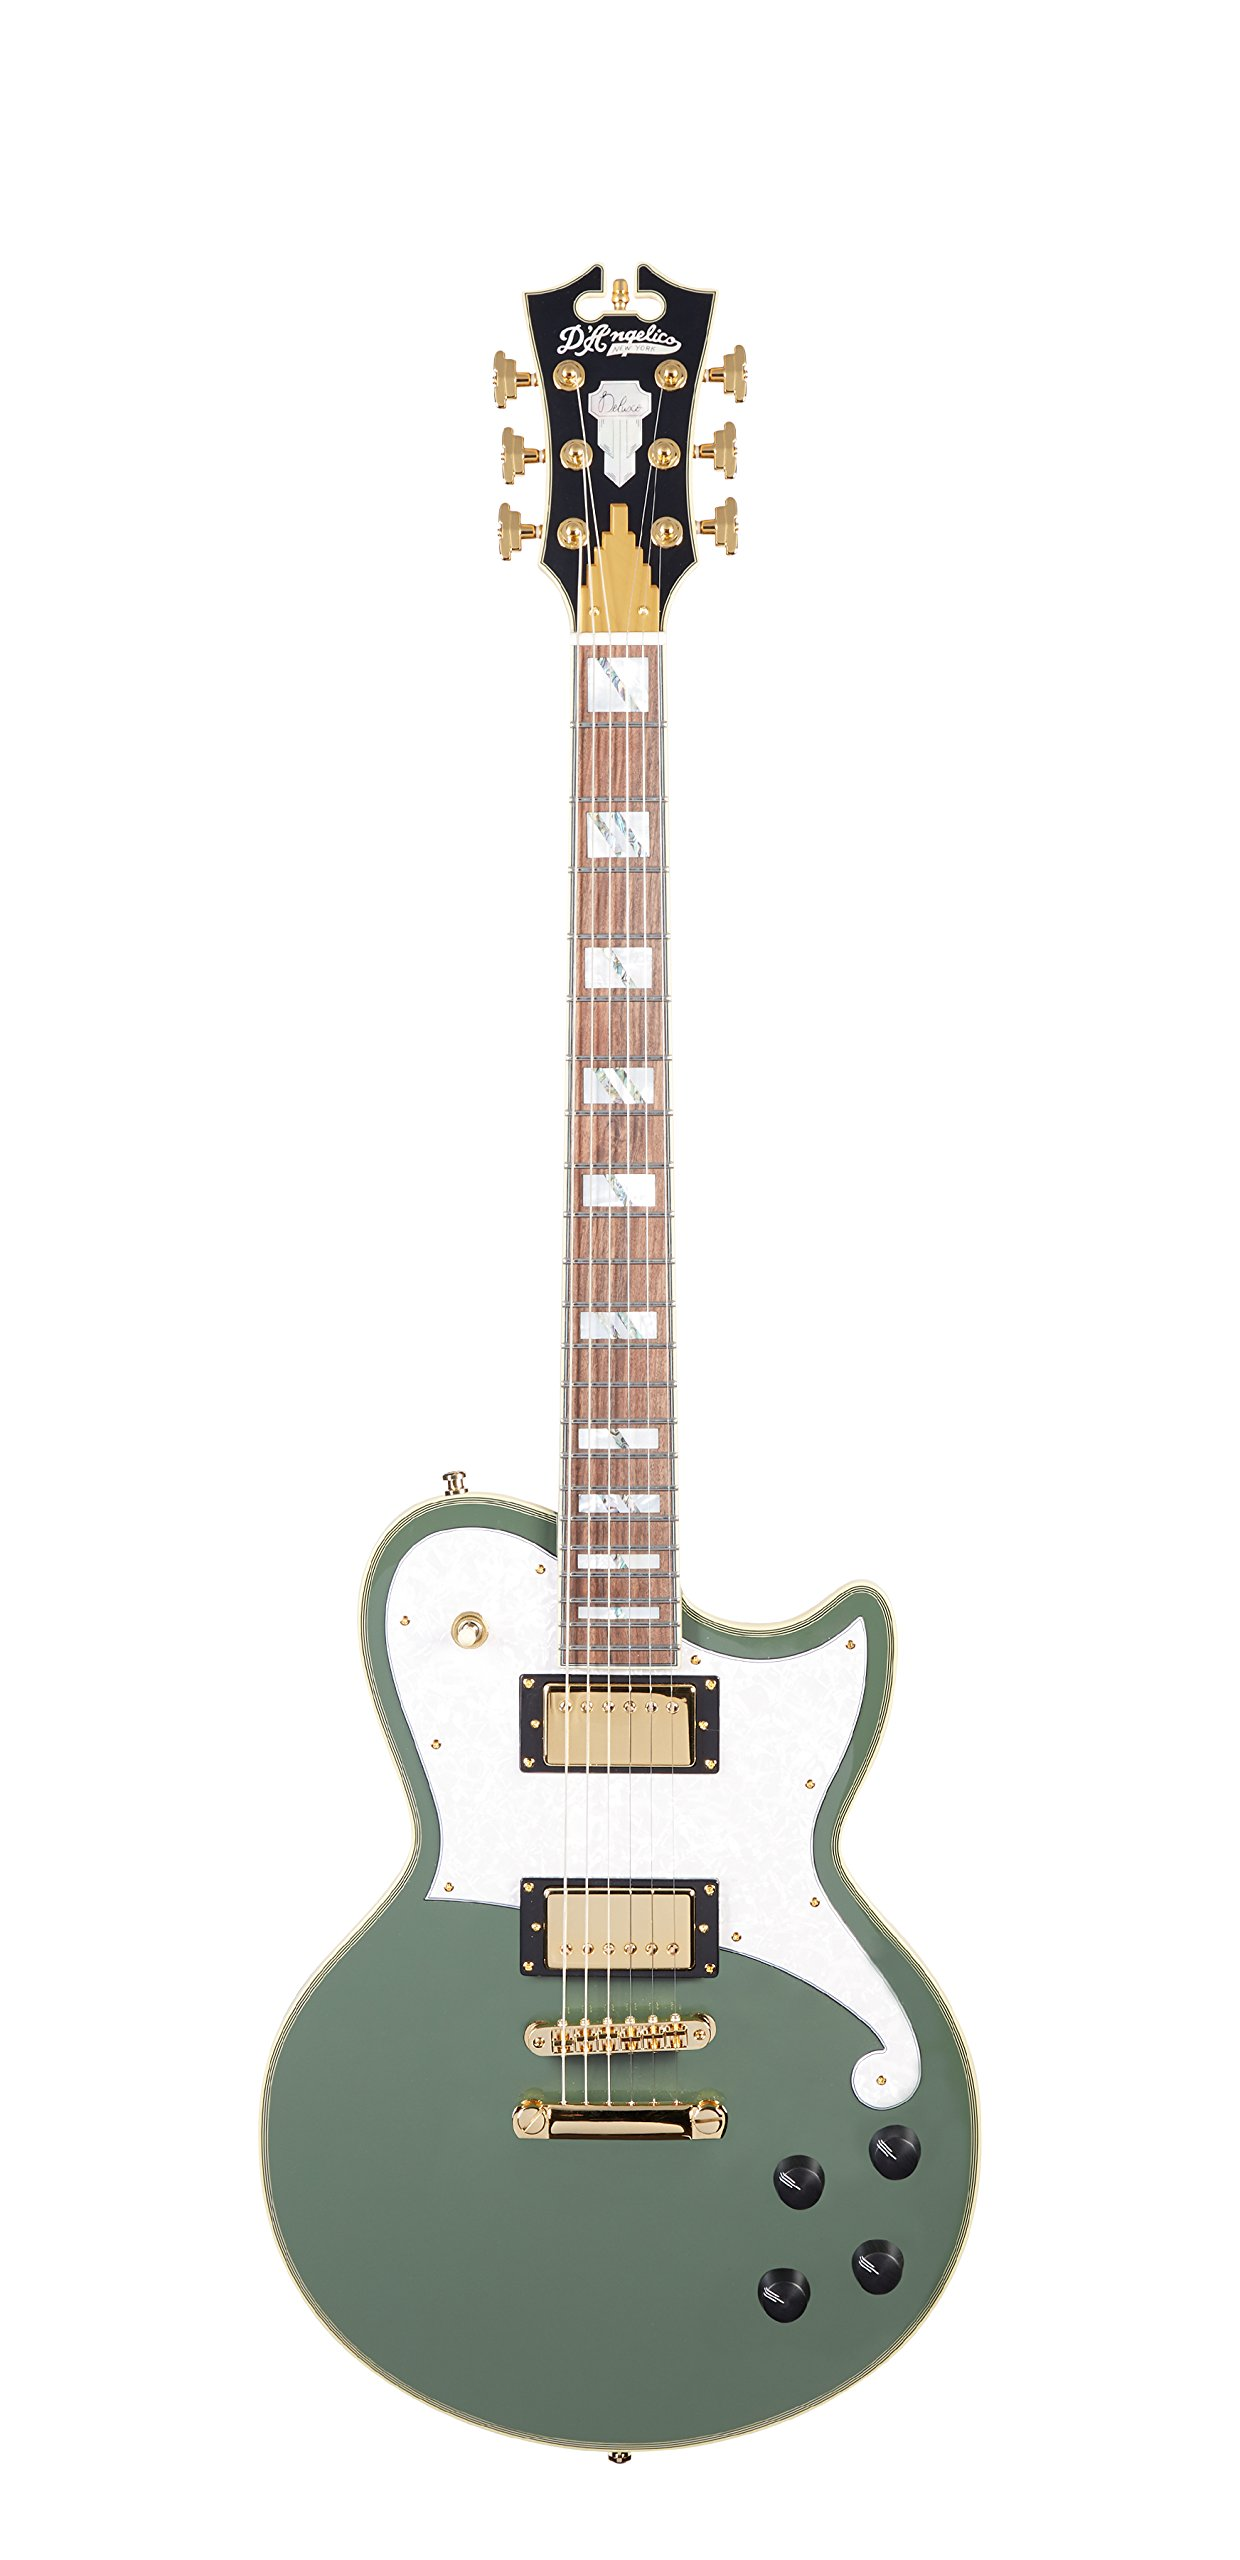 Cheap D Angelico Deluxe Atlantic Electric Guitar - Hunter Green Black Friday & Cyber Monday 2019